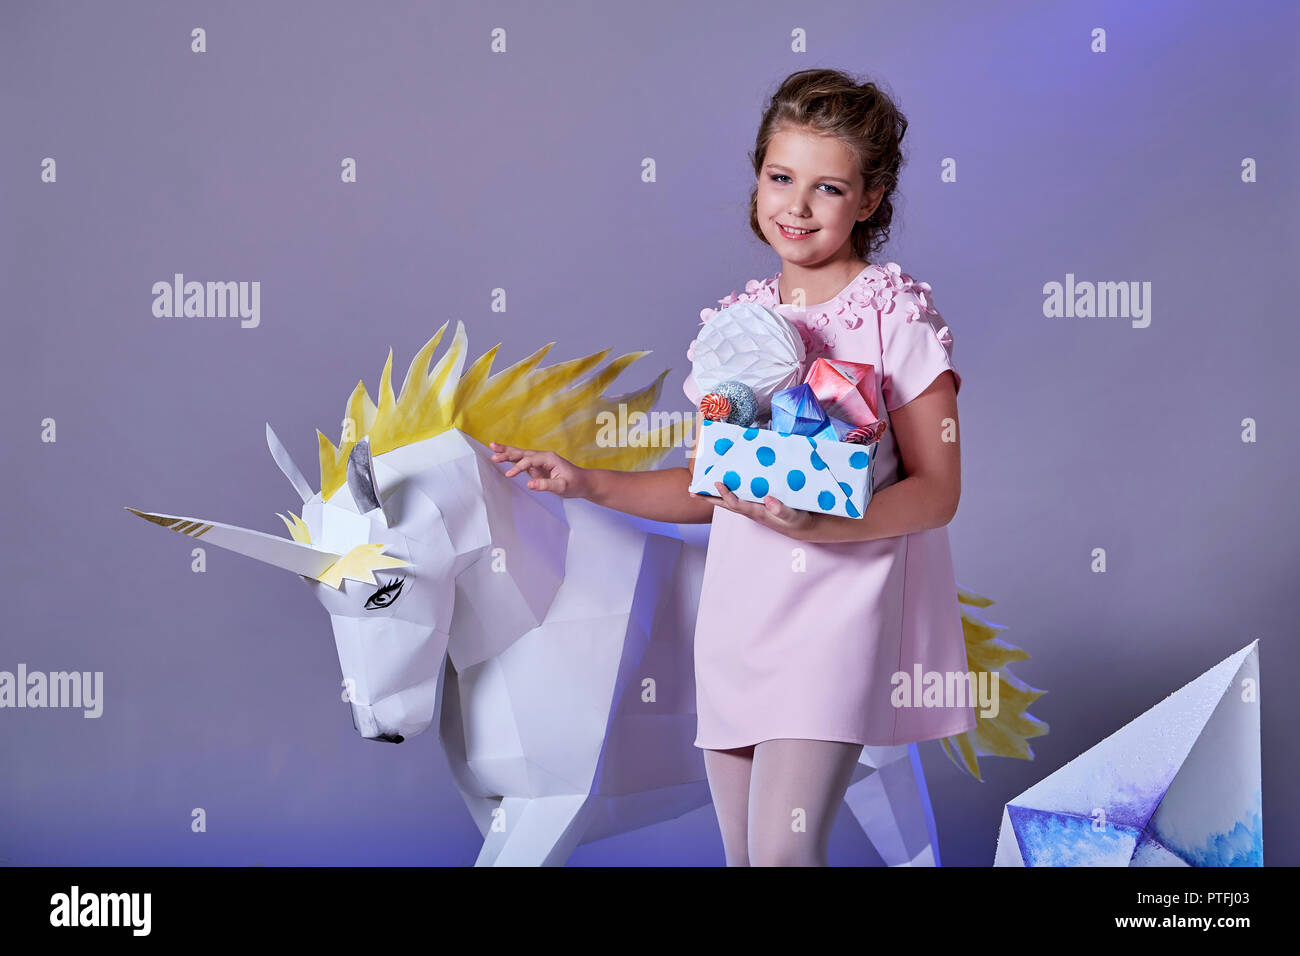 a52e32383c2b6 Beautiful caucasian teen girl in elegant pink dress holding box of origami.  Fashion kid eve Christmas,new year,holiday. Child portrait make-up.